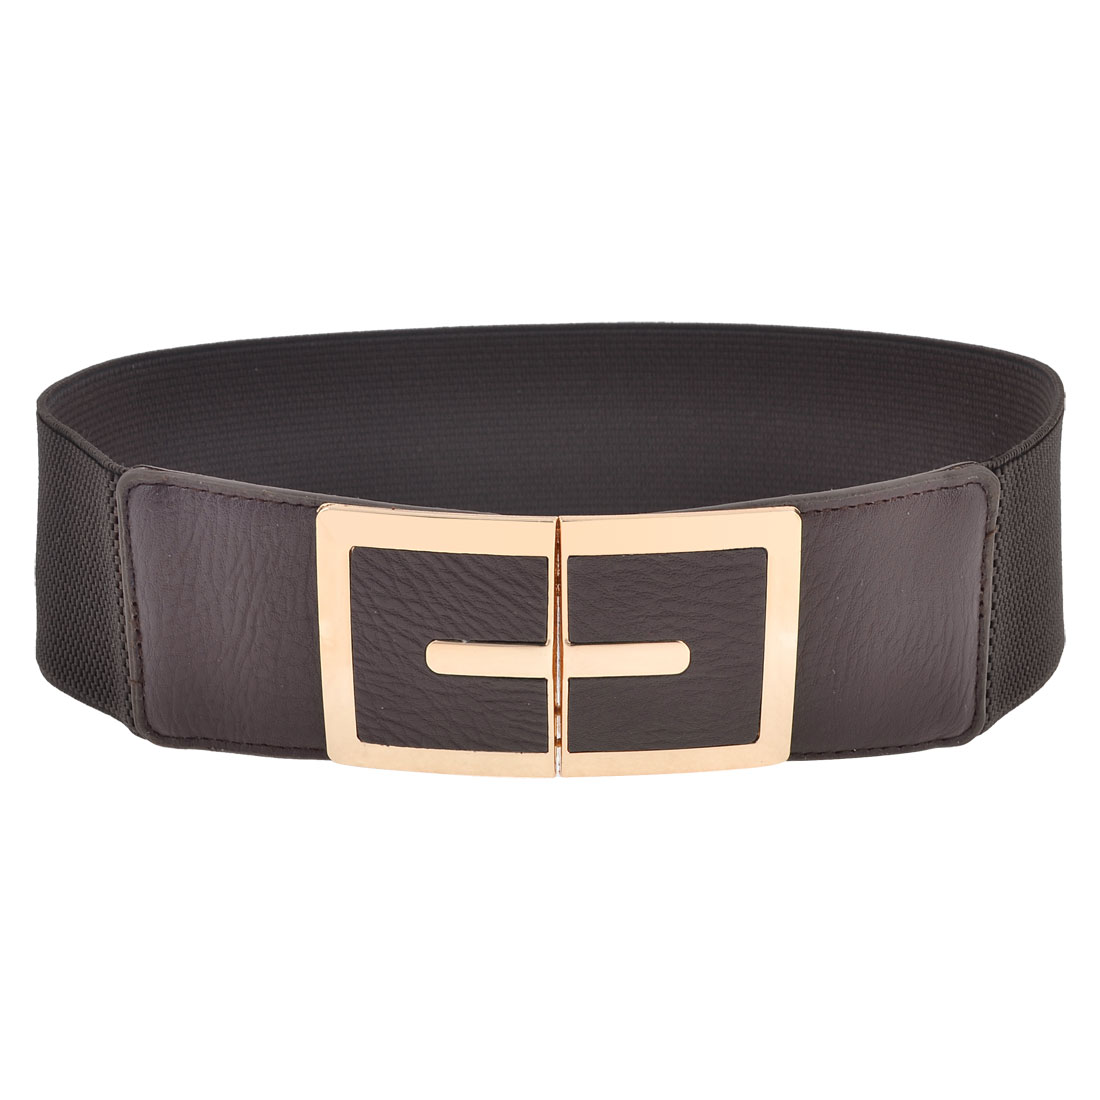 Lady Faux Leather Front Metal Interlock Buckle Elastic Waistband Chocolate Color